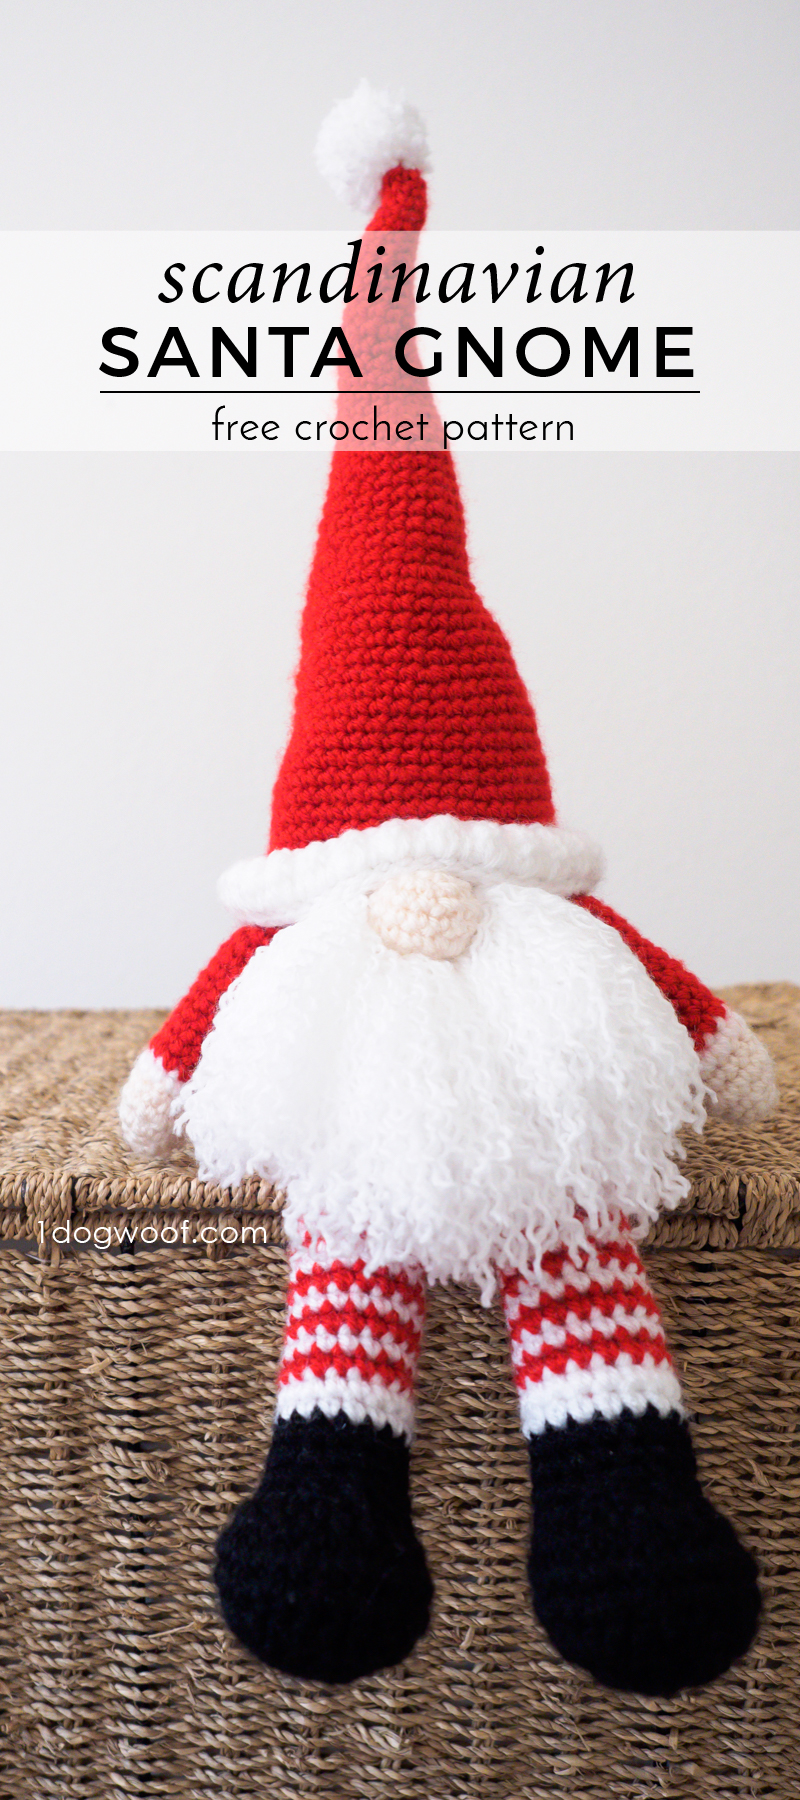 Scandinavian Santa Gnome free crochet pattern. Makes a perfect handmade gift for Christmas! | www.1dogwoof.com